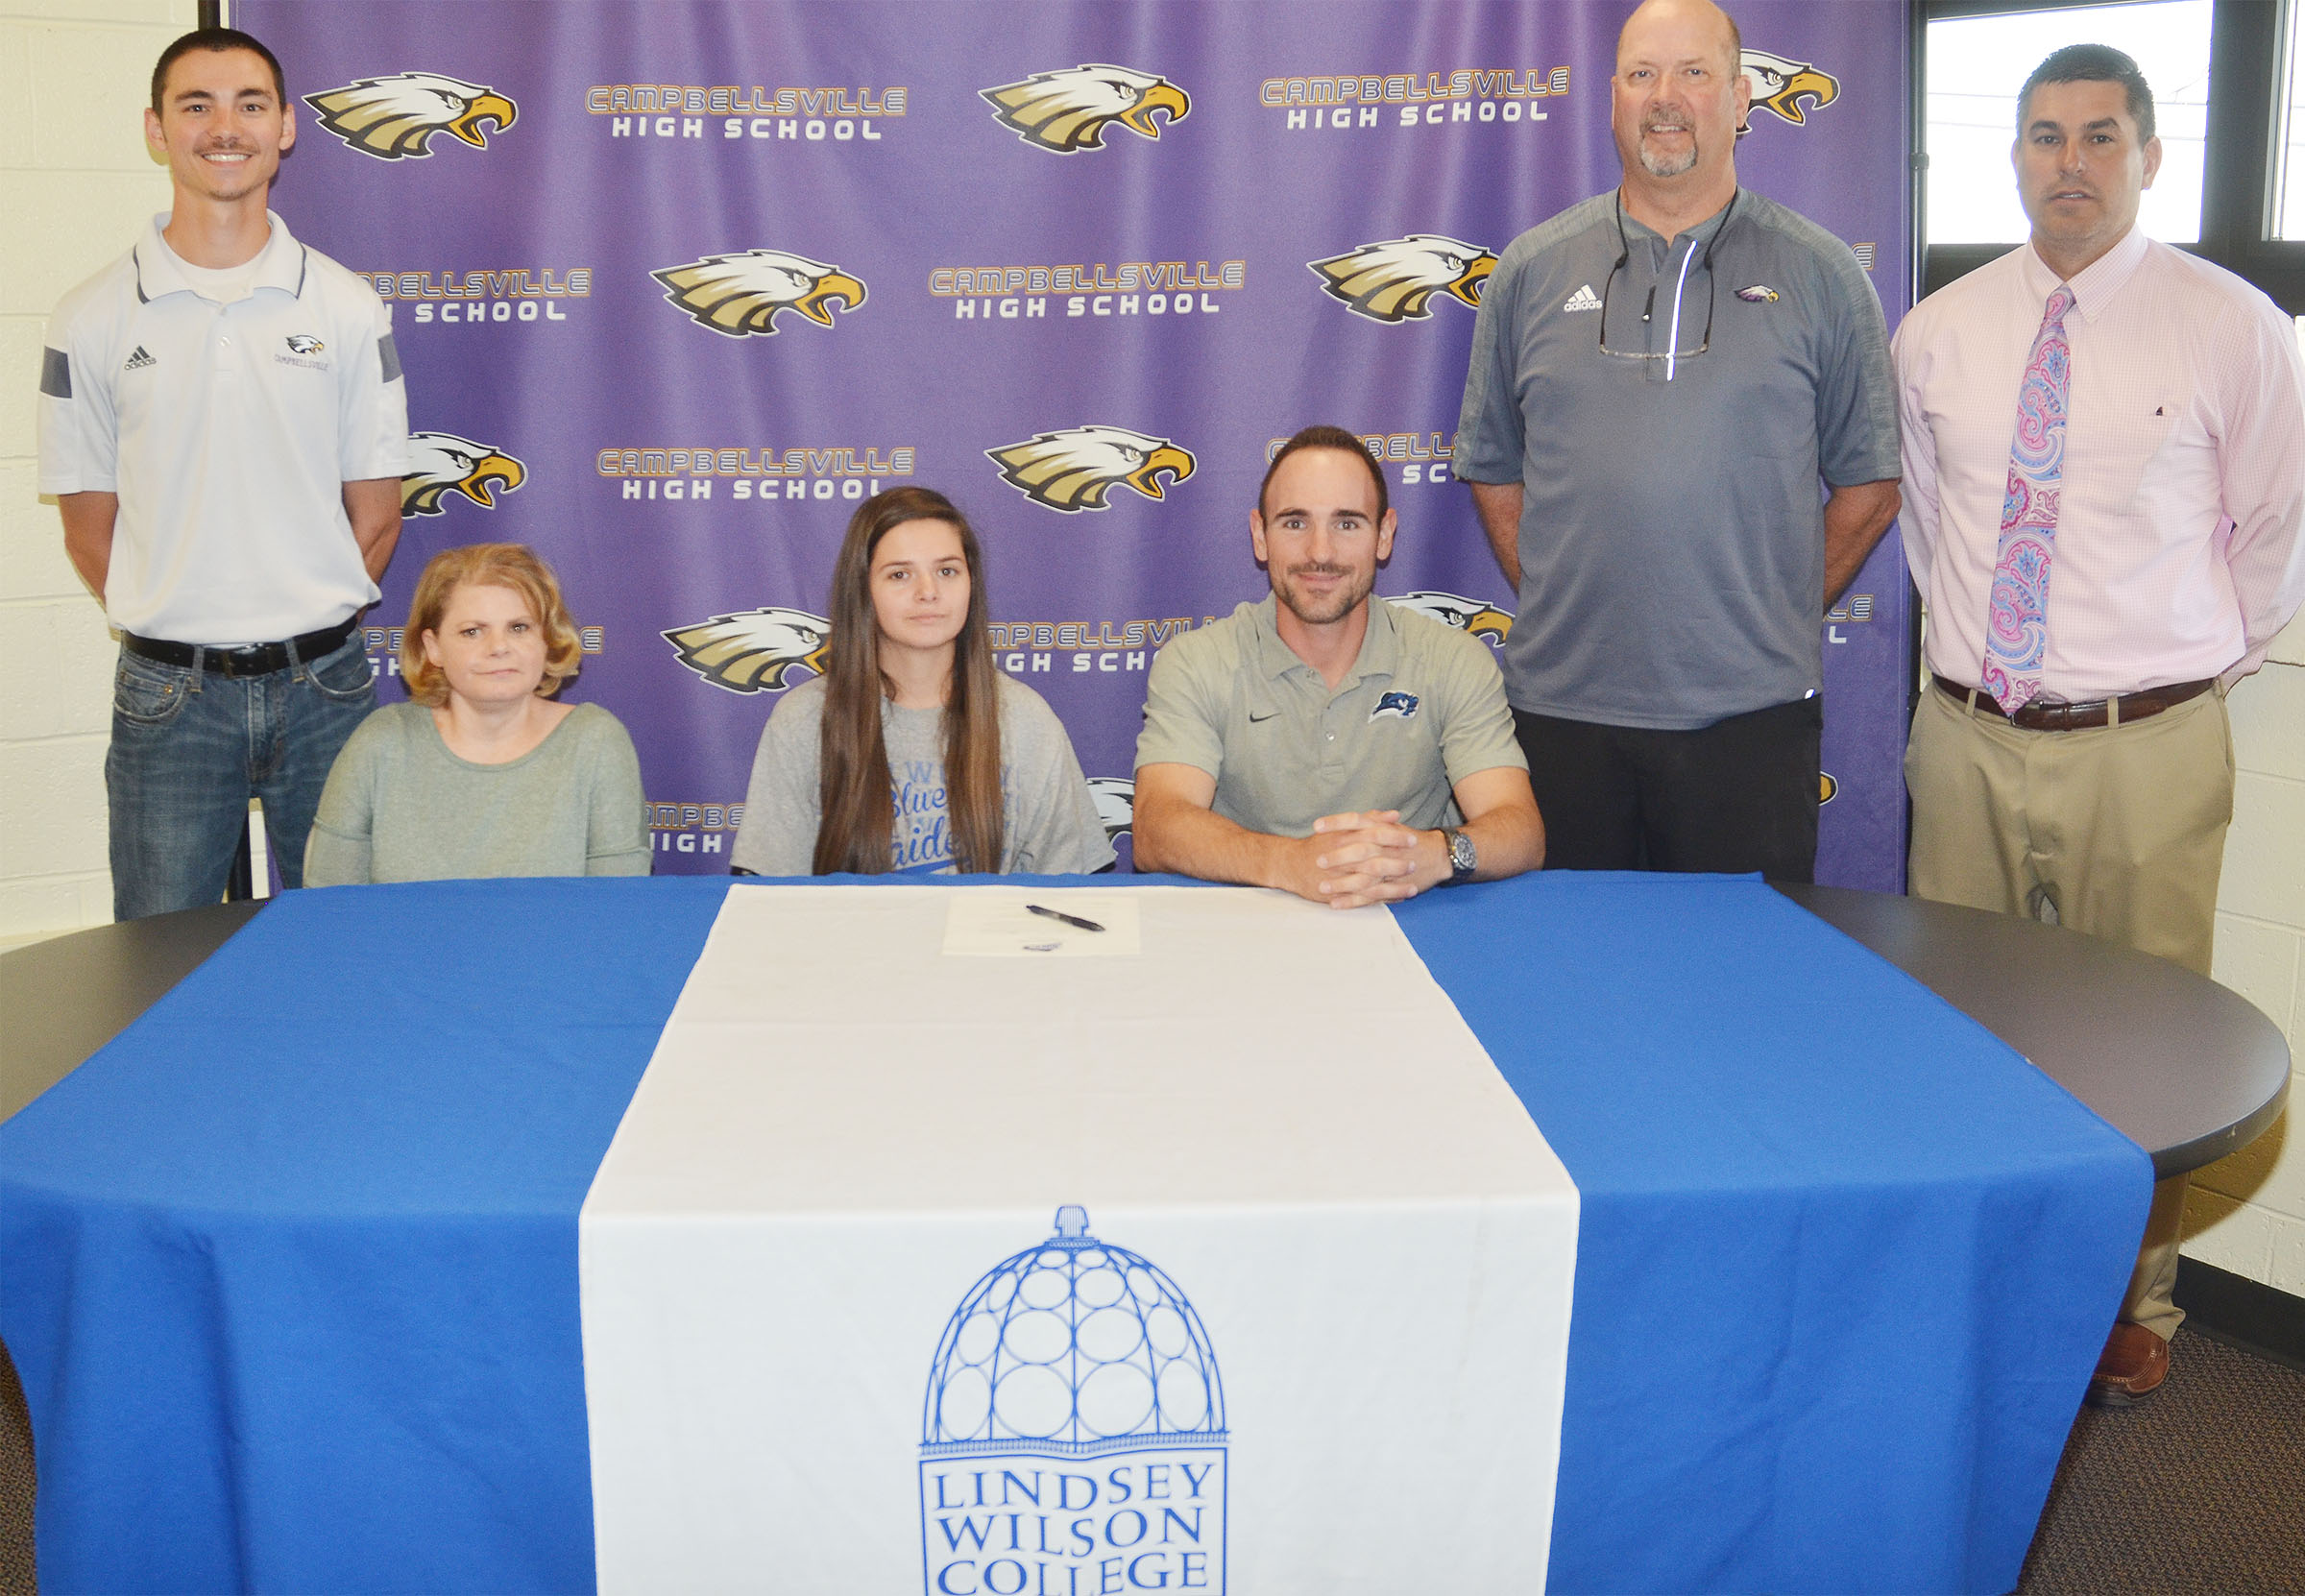 Campbellsville High School senior Shauna Jones will continue her academic and tennis career at Lindsey Wilson College this fall. Attending her signing ceremony are, from left, CHS tennis coach Bradley Harris, her mother Dana Pearl, Shauna, LWC head tennis coach Marlon Dal Pont, CHS Athletic Director Tim Davis and CHS Principal Kirby Smith.